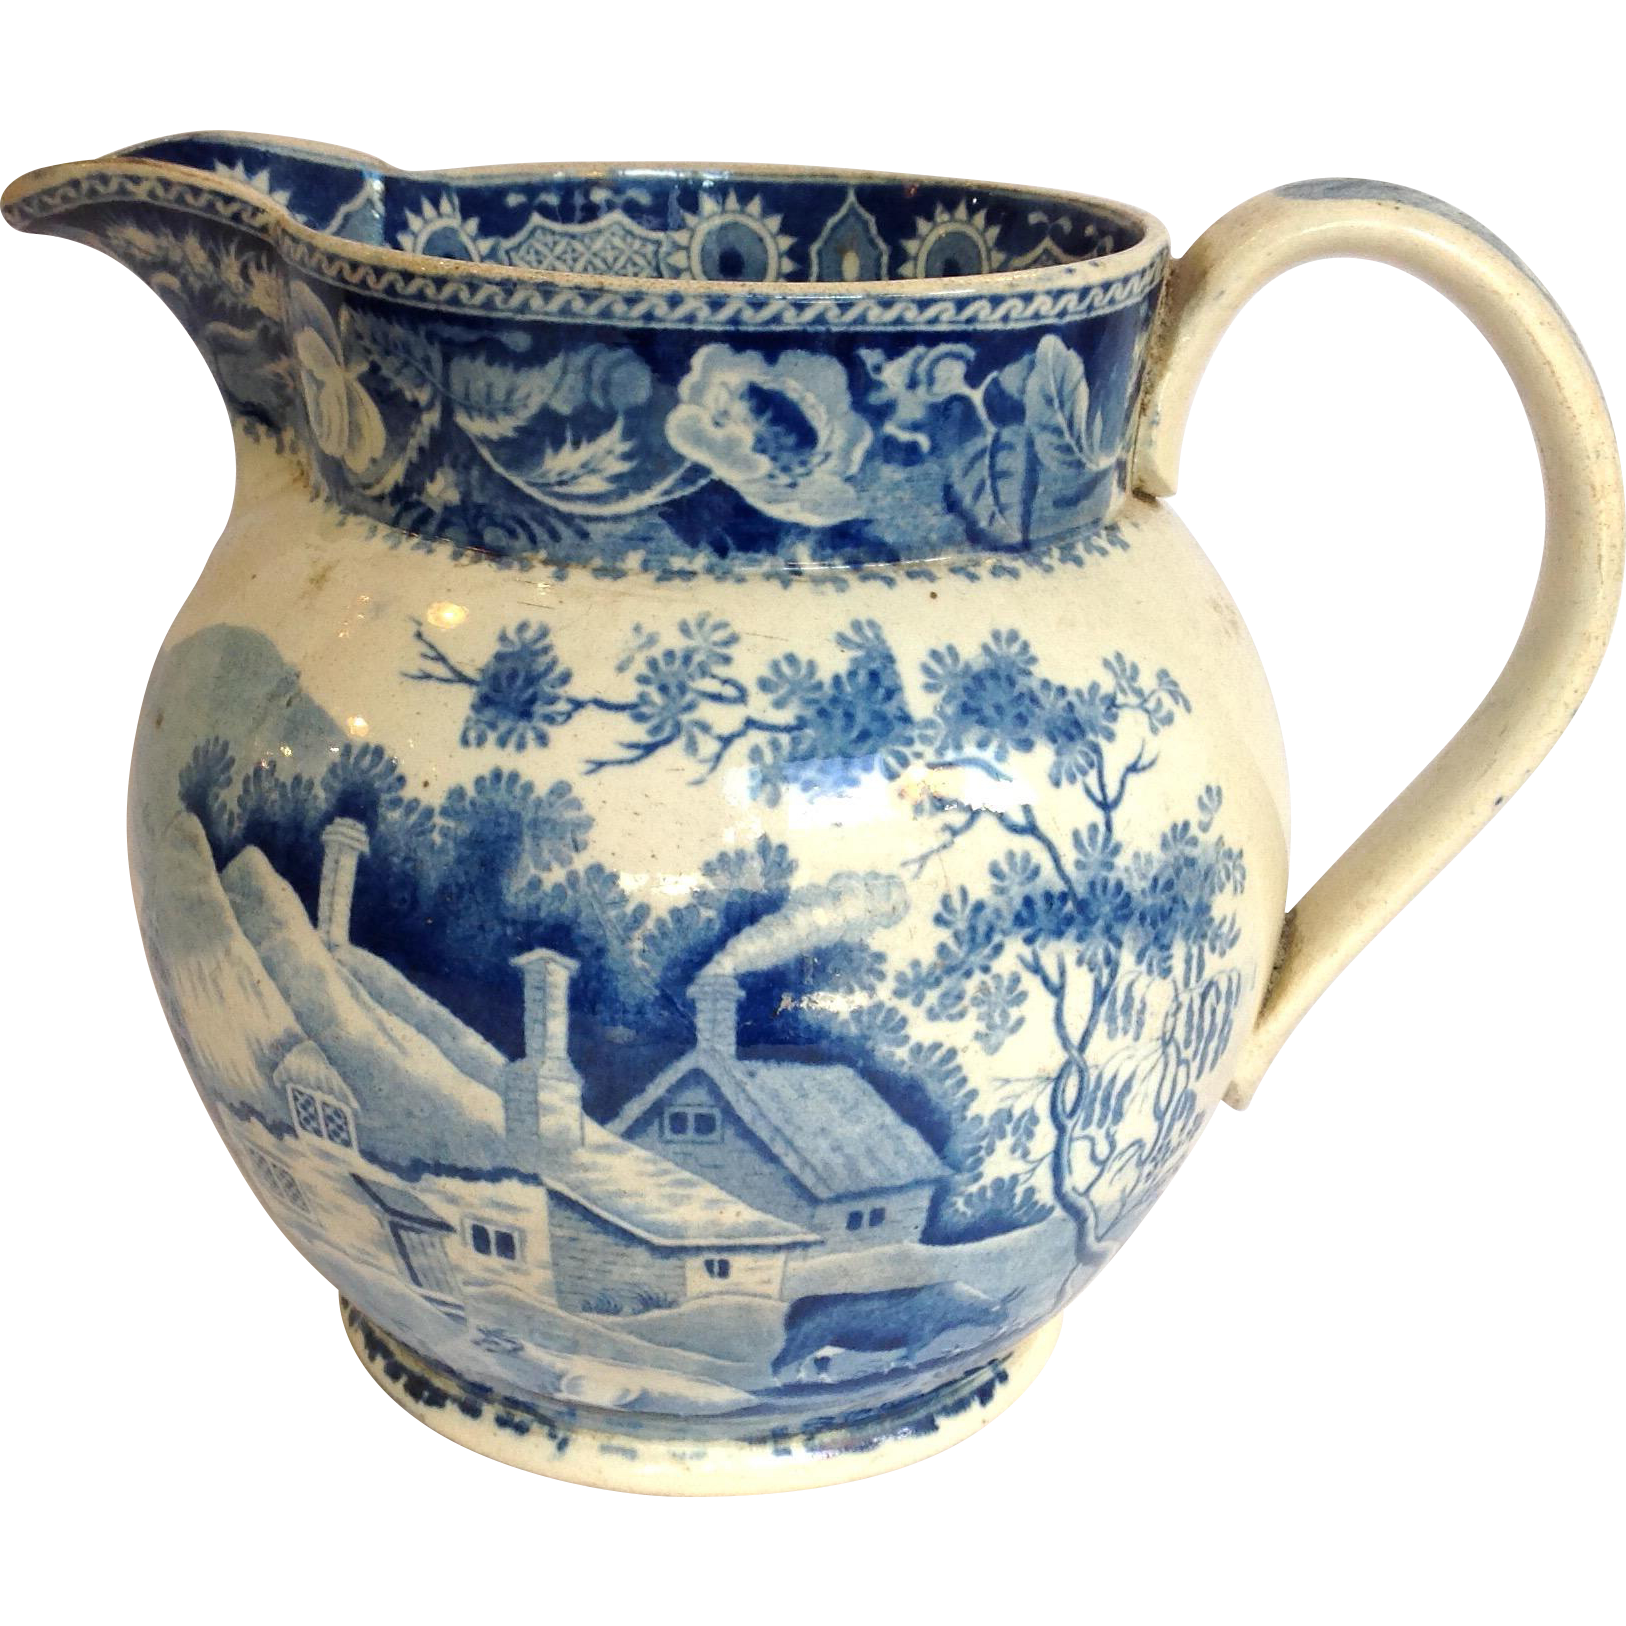 Minton Jug Transferware Blue And White 19th C. from antiquesofriveroaks on Ruby Lane